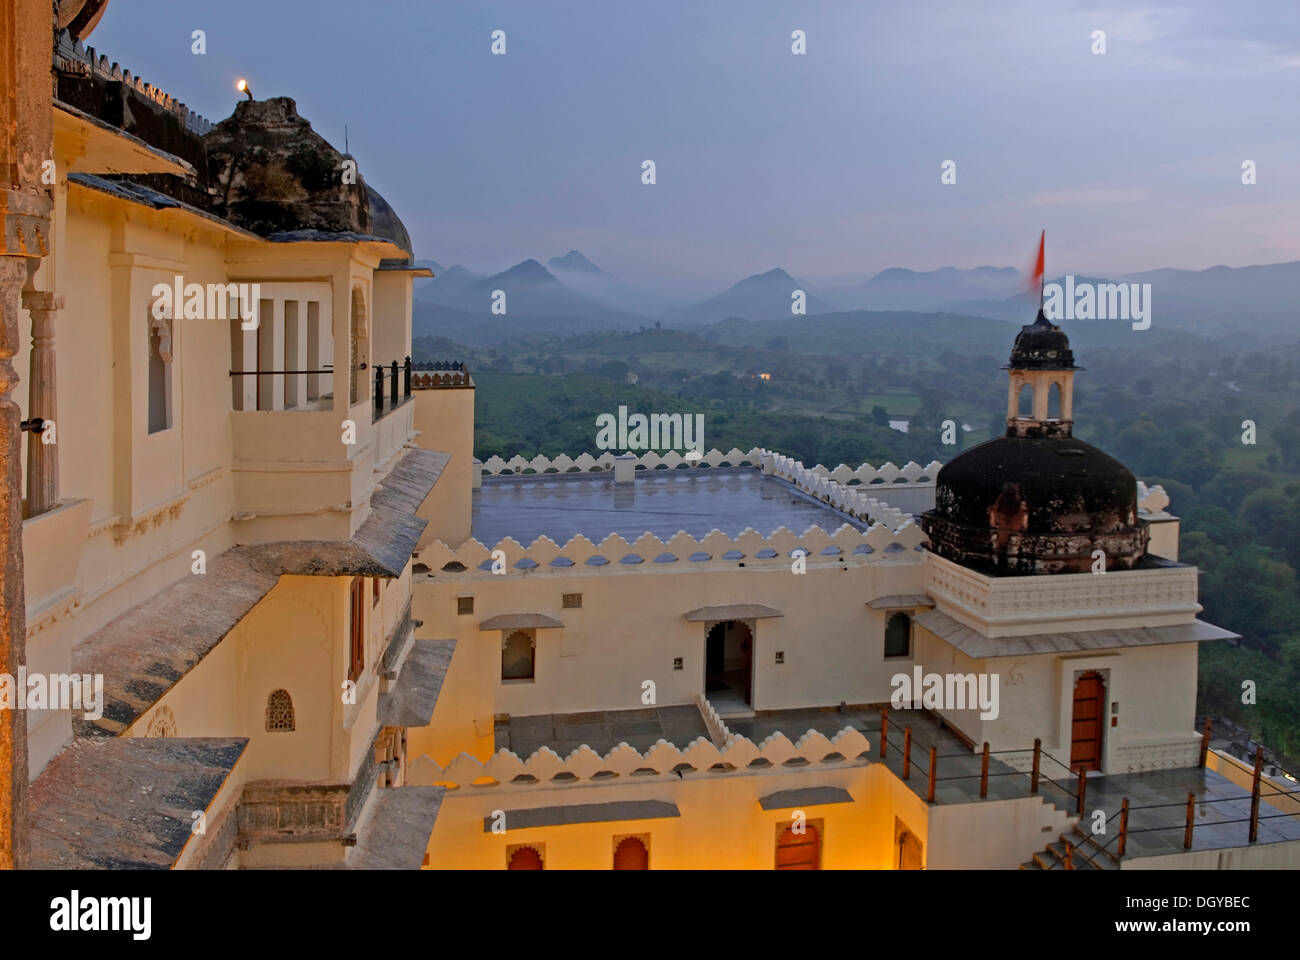 Devigarh Palace Hotel in il monsone, vicino a Udaipur, Rajasthan, India, Asia Foto Stock